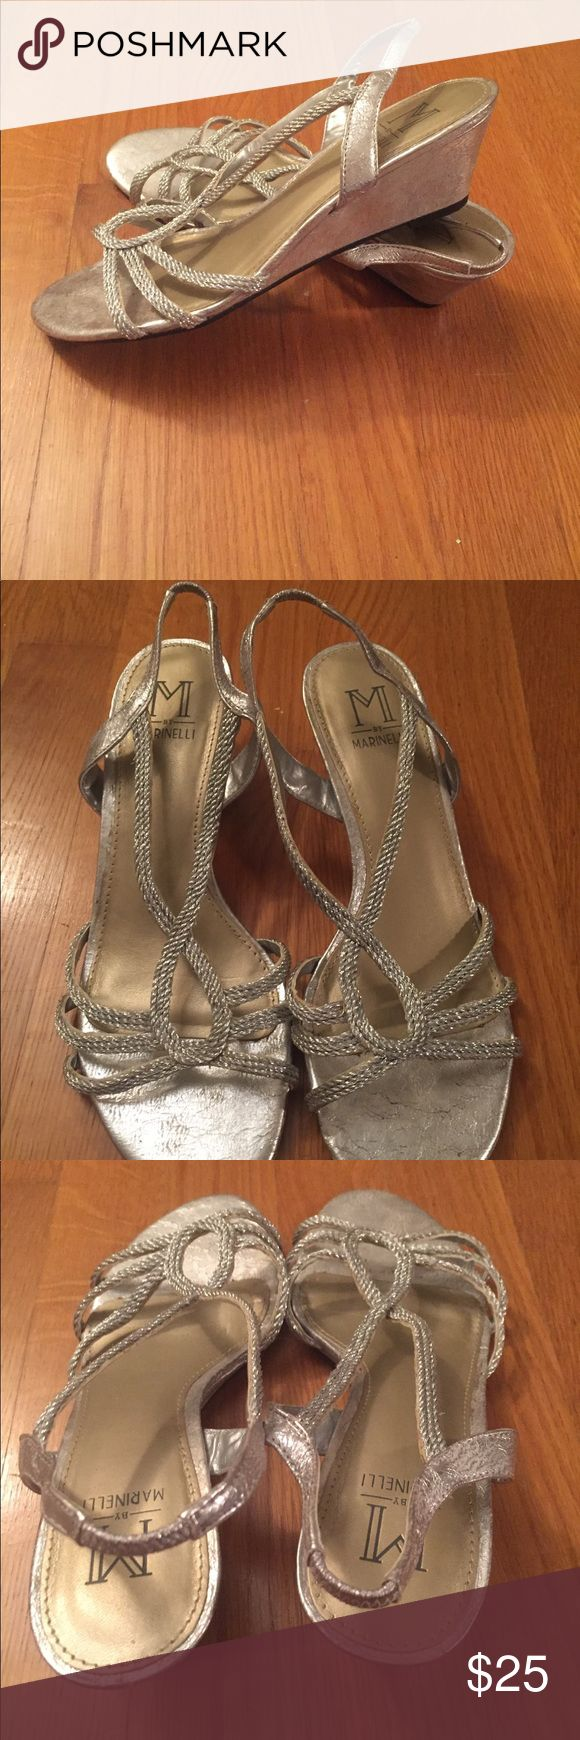 Silver wedge sandal Worn on one occasion as this was a bridesmaid shoe. Elastic on back of heel strap. Metallic silver. Still in good condition. Main wear is on the bottom of the sole. A. Marinelli Shoes Sandals